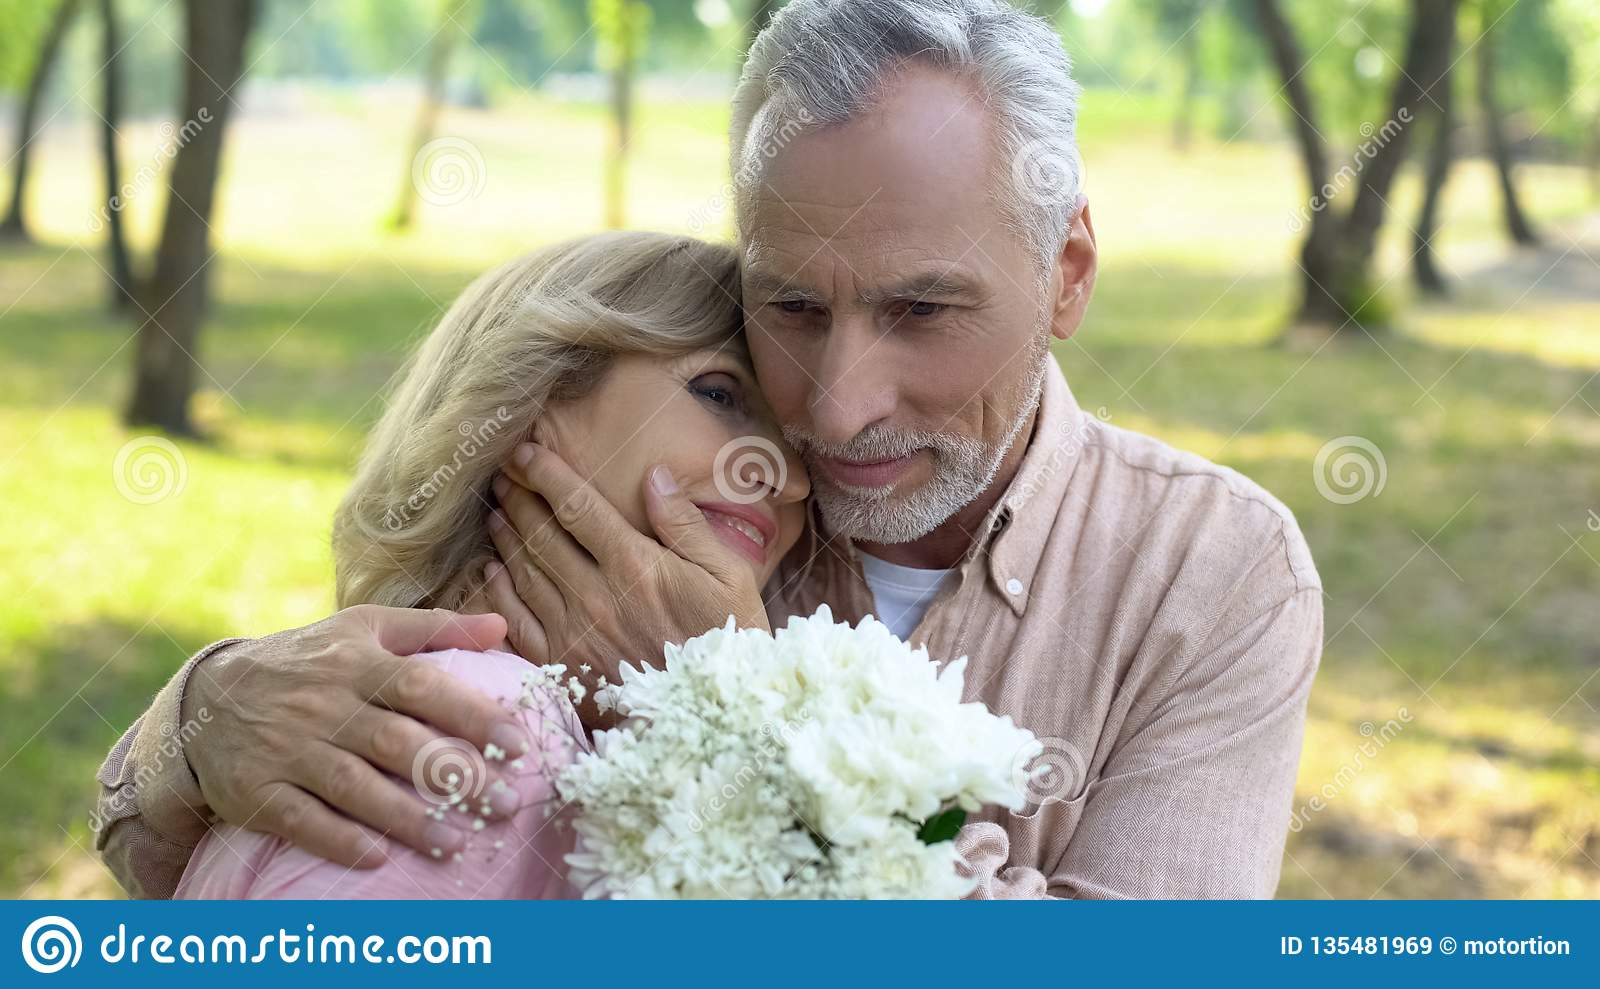 Old man hugging happy wife holding flowers, celebrating marriage anniversary